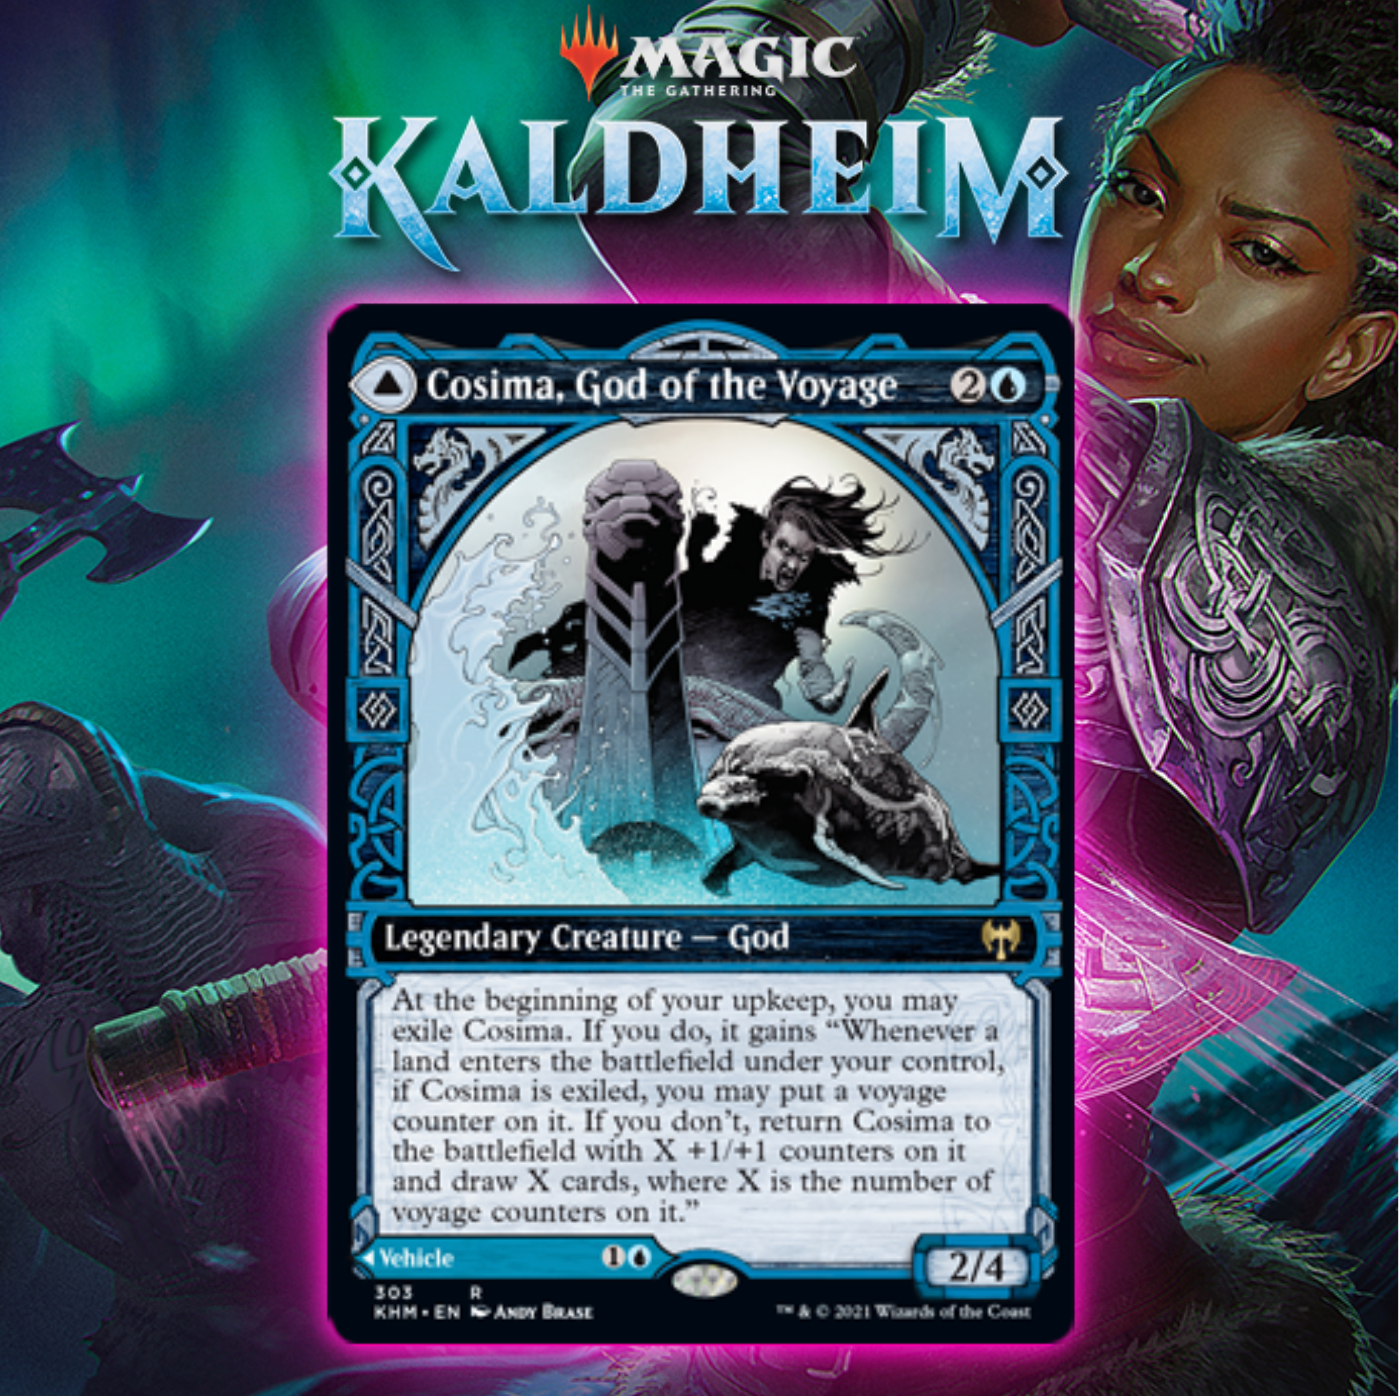 Why Cosima, God Of The Voyage Is The Card I'm Most Excited About From Kaldheim